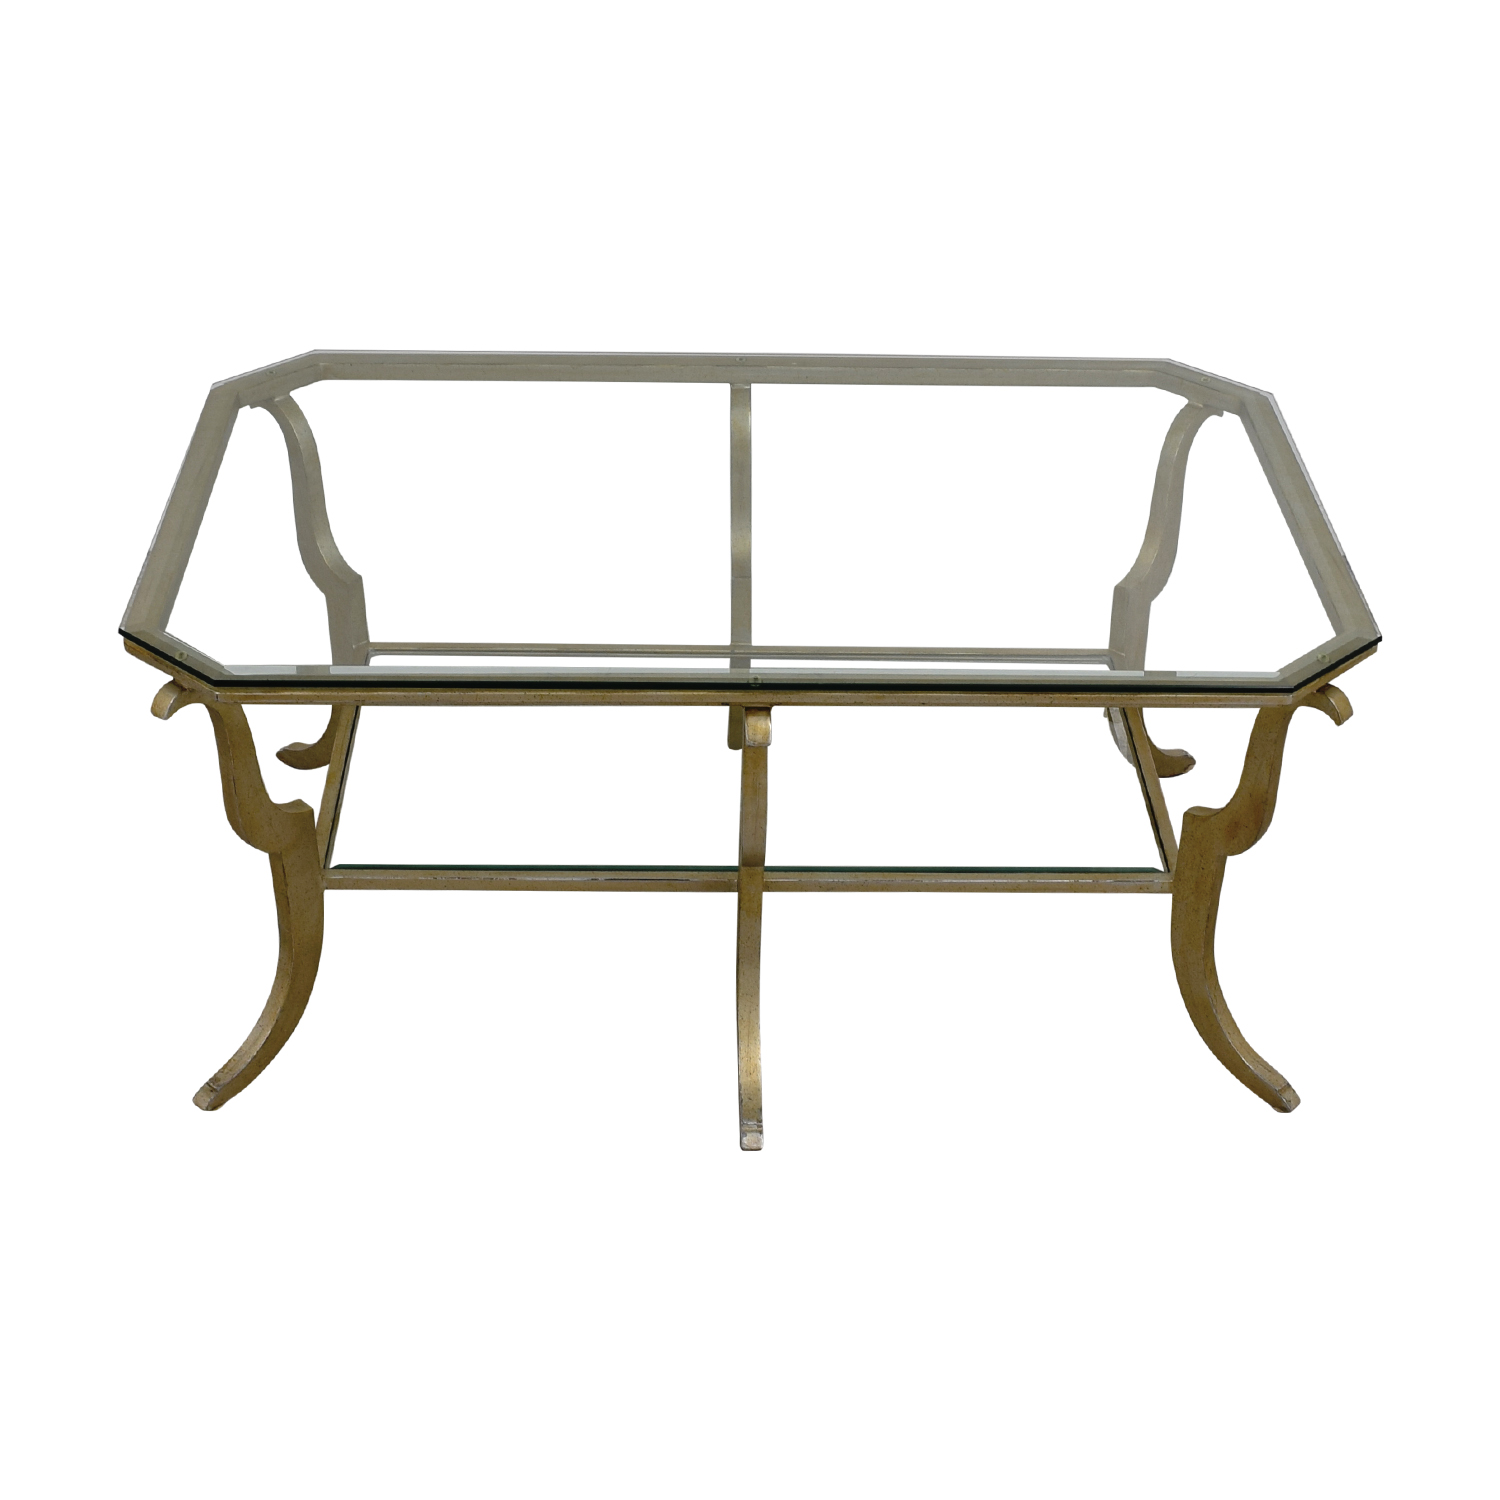 Glass and Brass Coffee Table dimensions